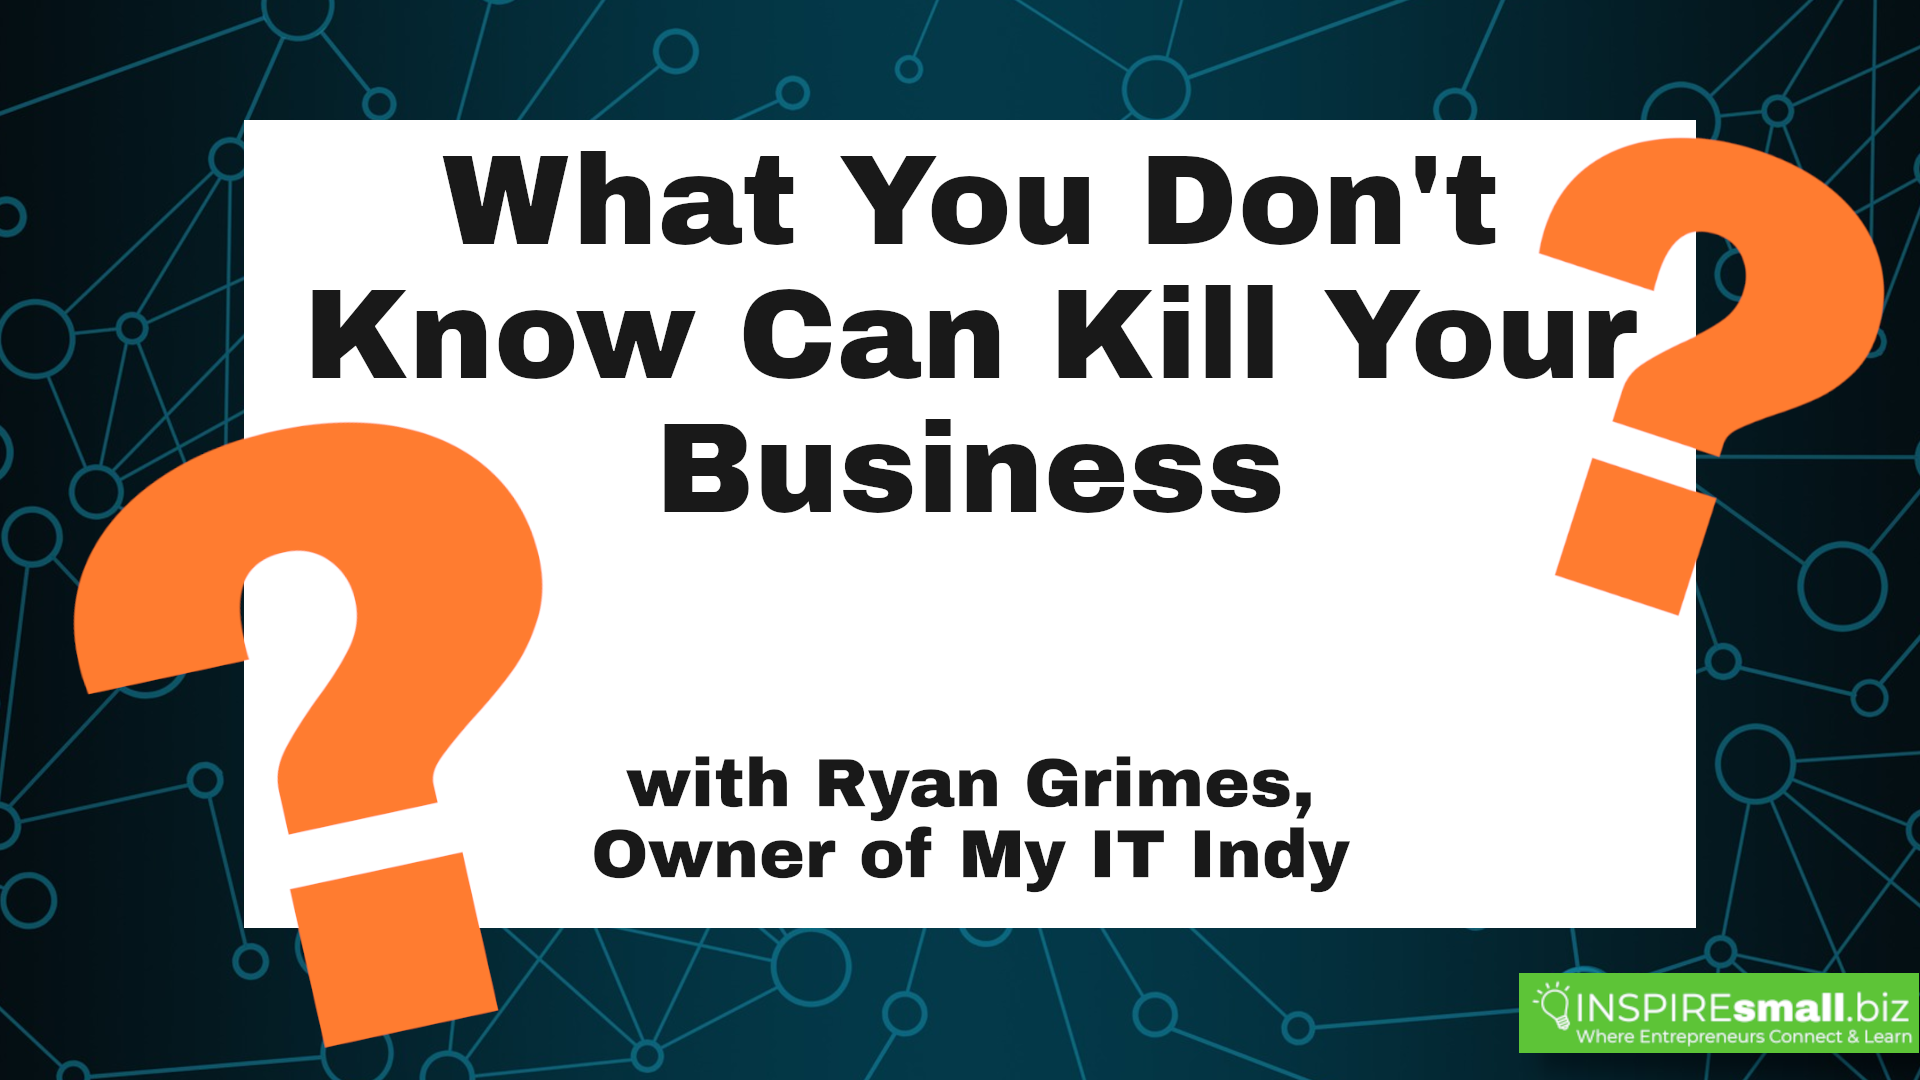 What You Don't Know About IT Can Kill Your Business - INSPIREsmall.biz Monday Networking